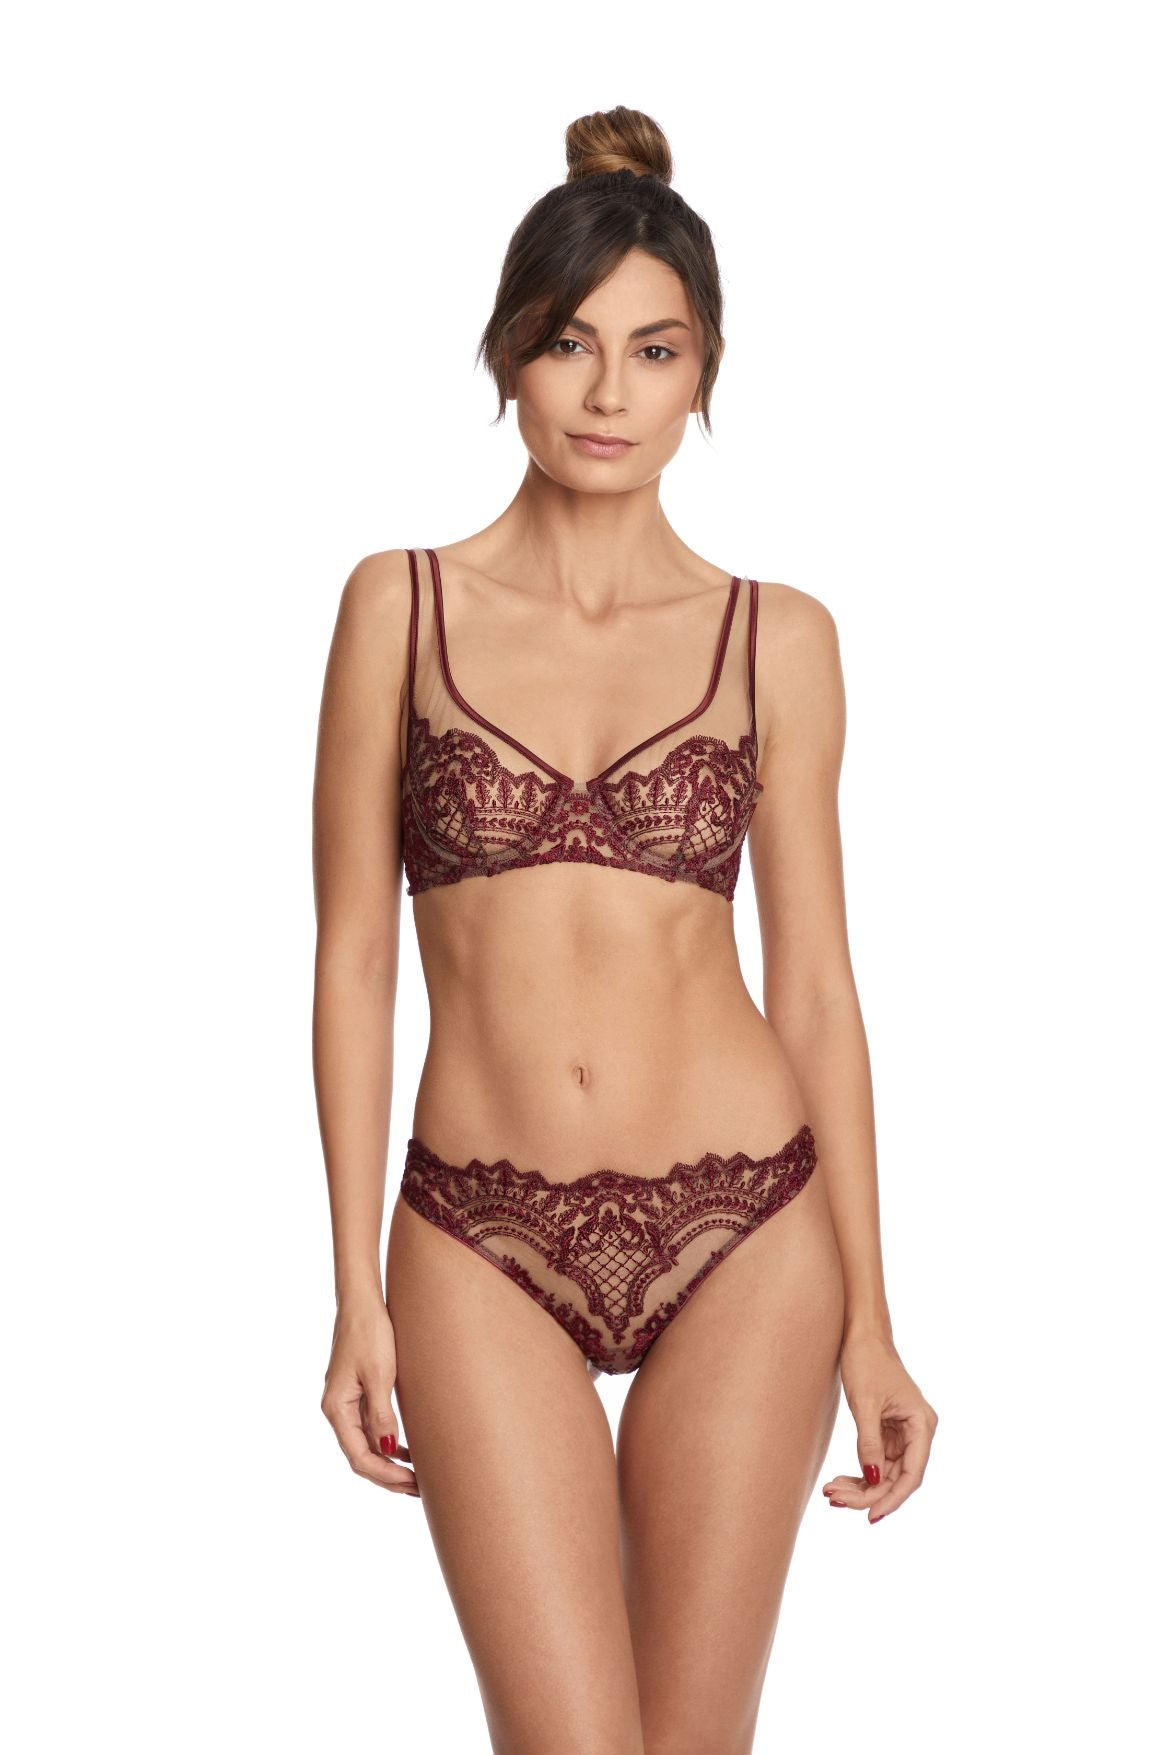 I.D. Sarrieri embroidered tulle bordeaux underwired cup bra and brief